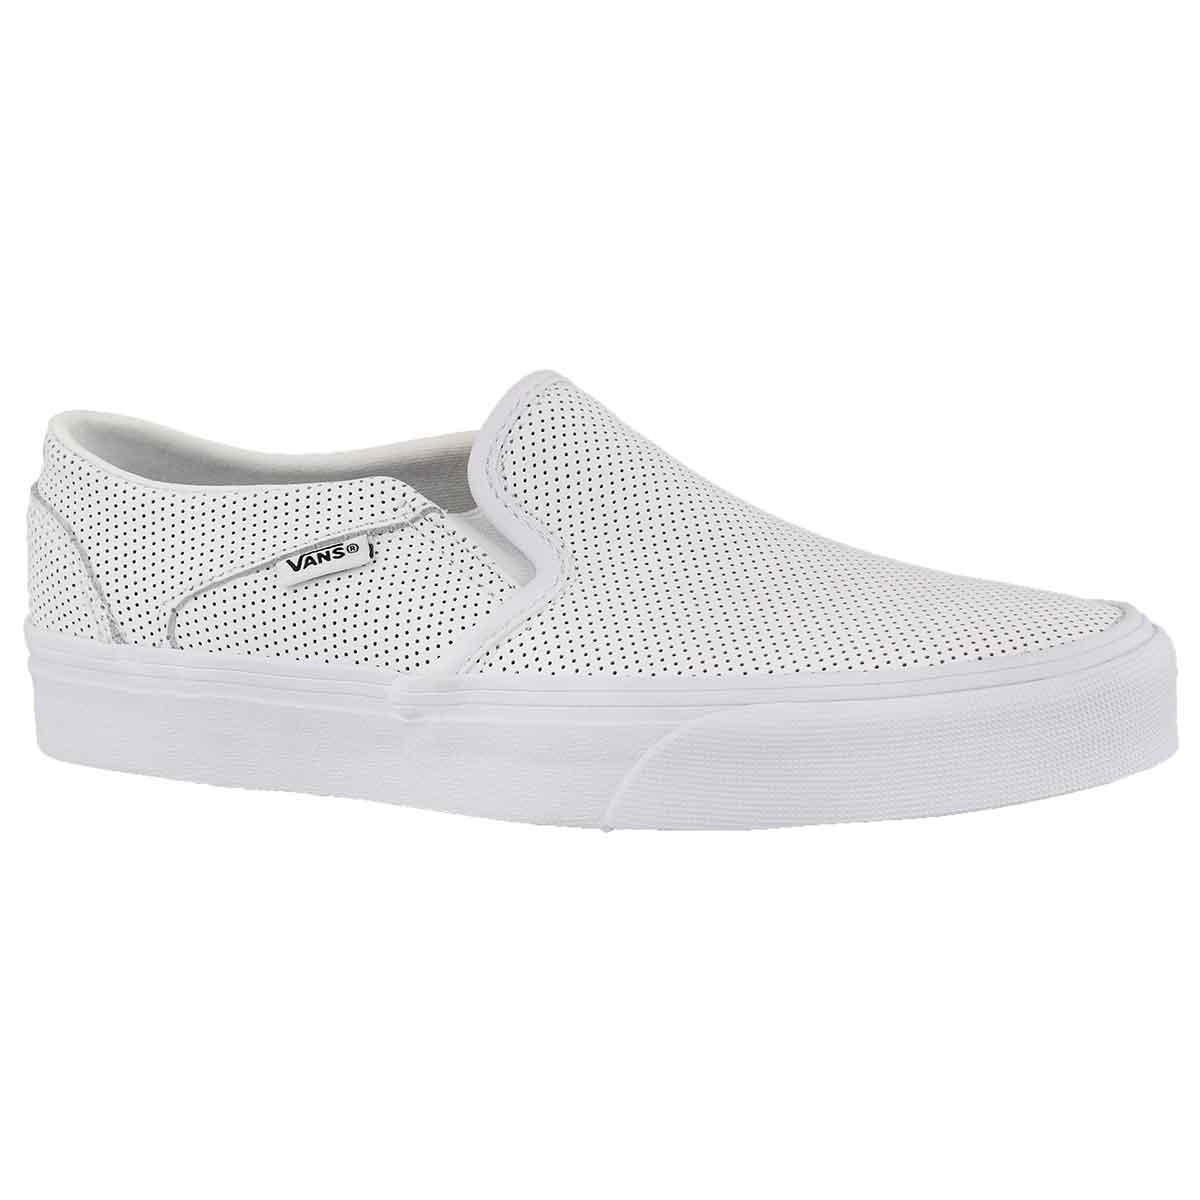 Women's ASHER white leather slip on sneakers